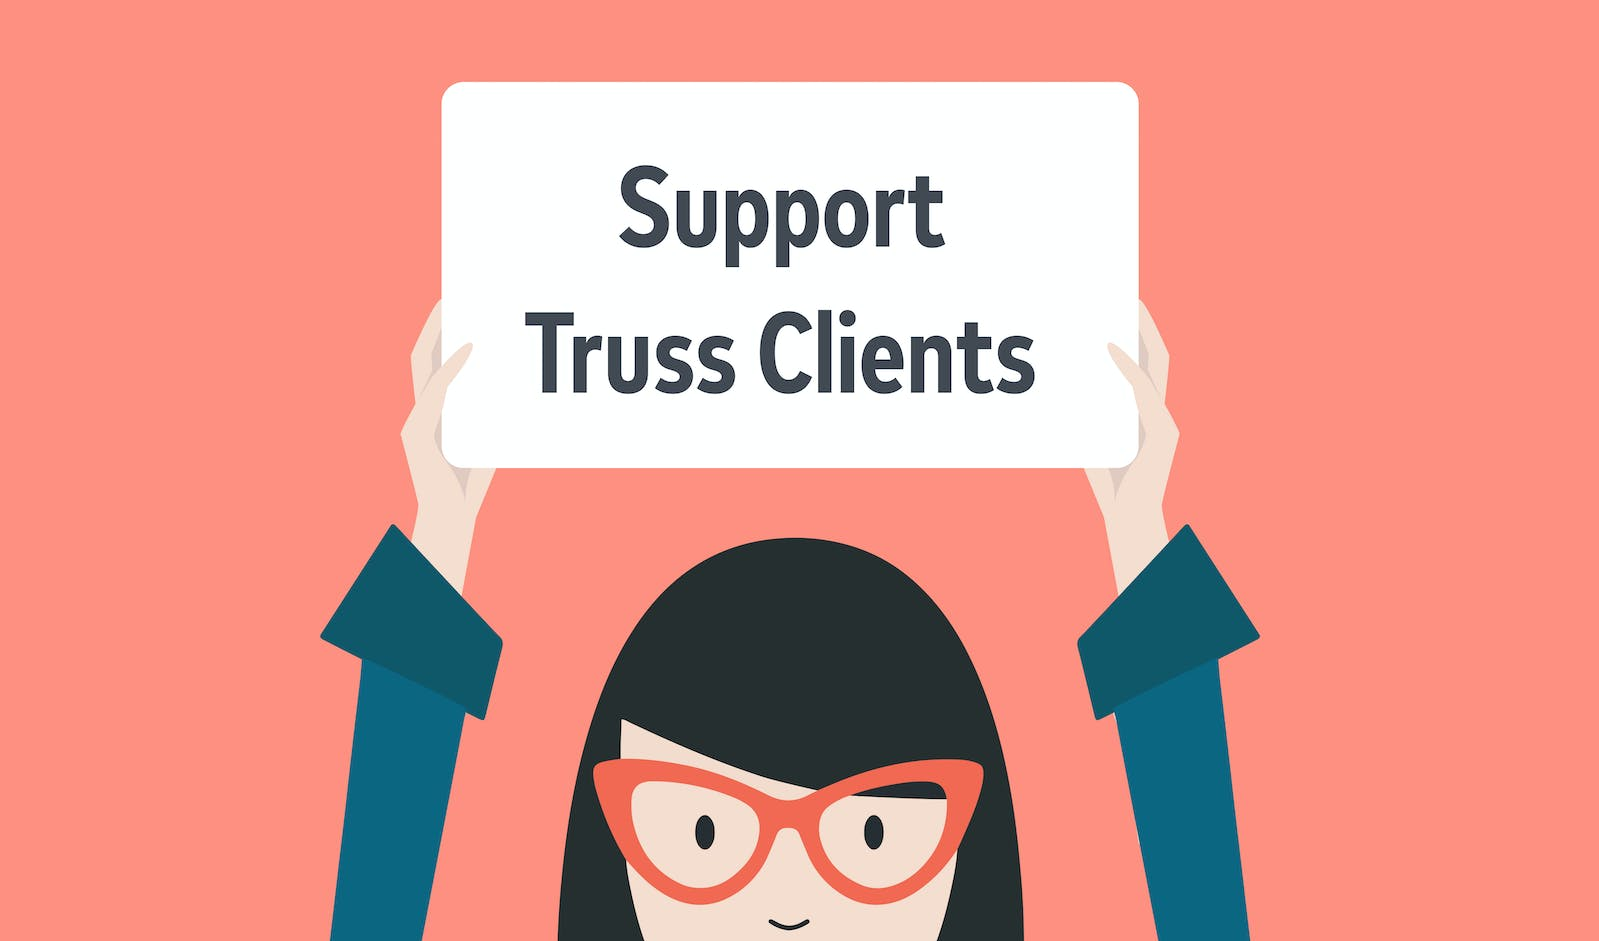 Support Truss Clients